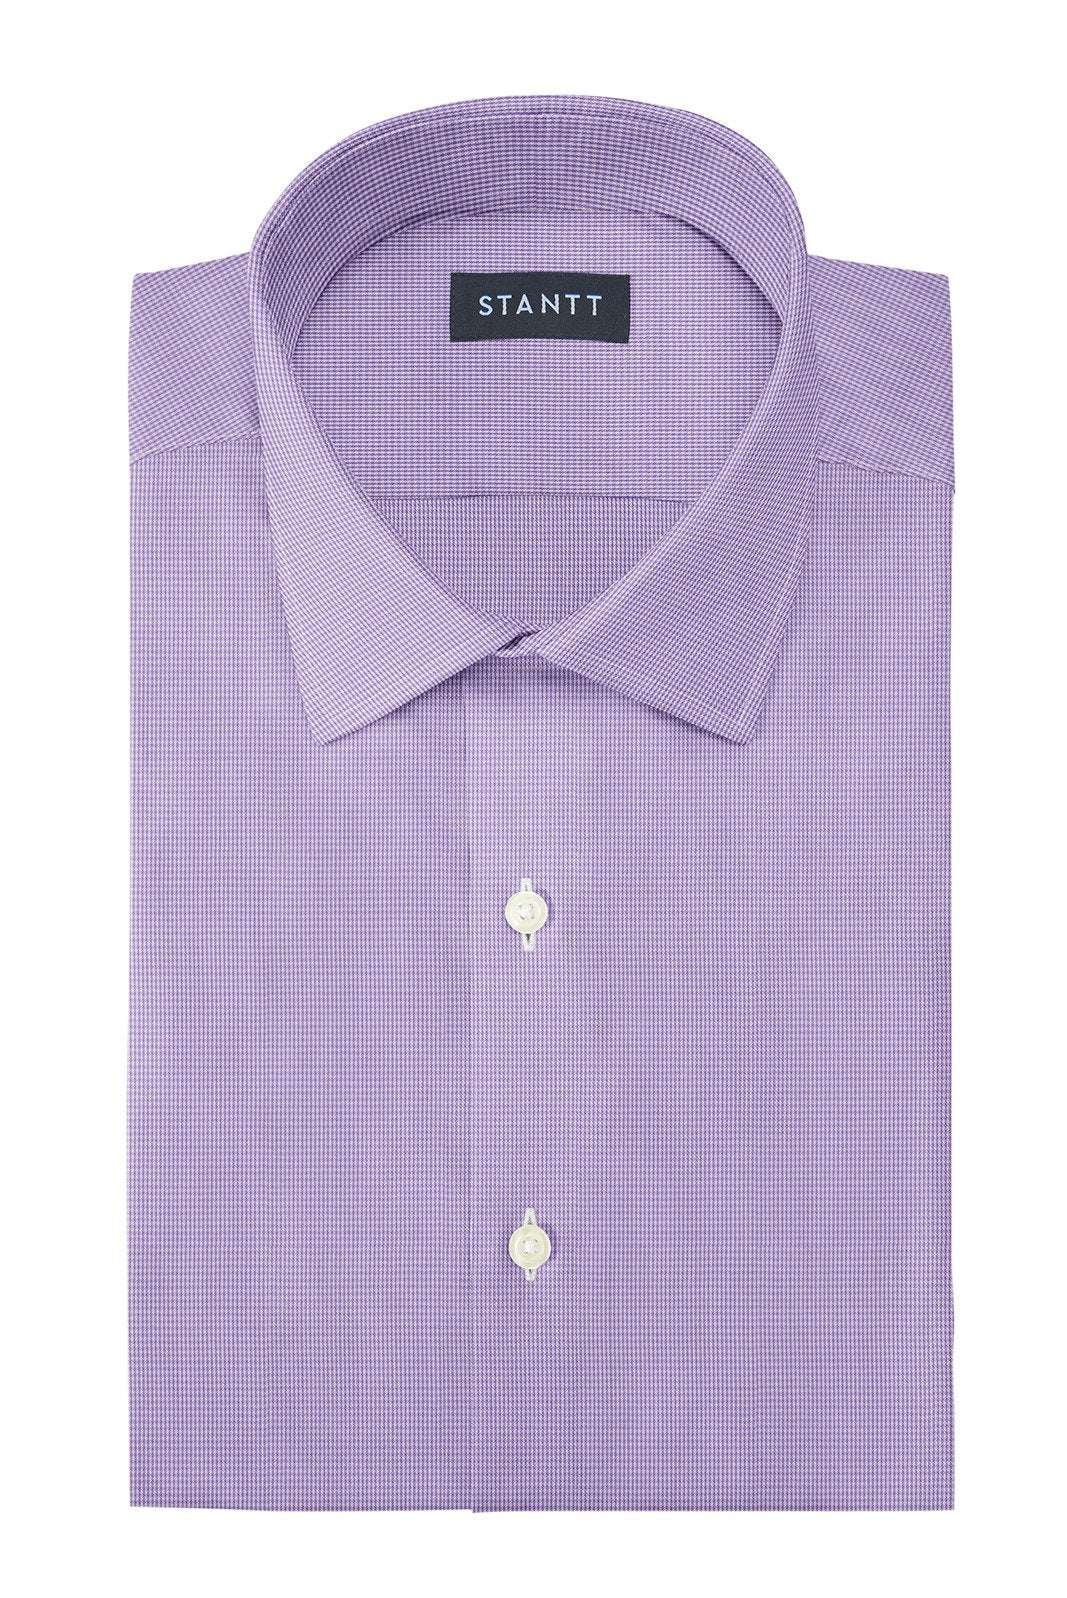 Wrinkle-Resistant Purple Micro Gingham: Modified-Spread Collar, French Cuff